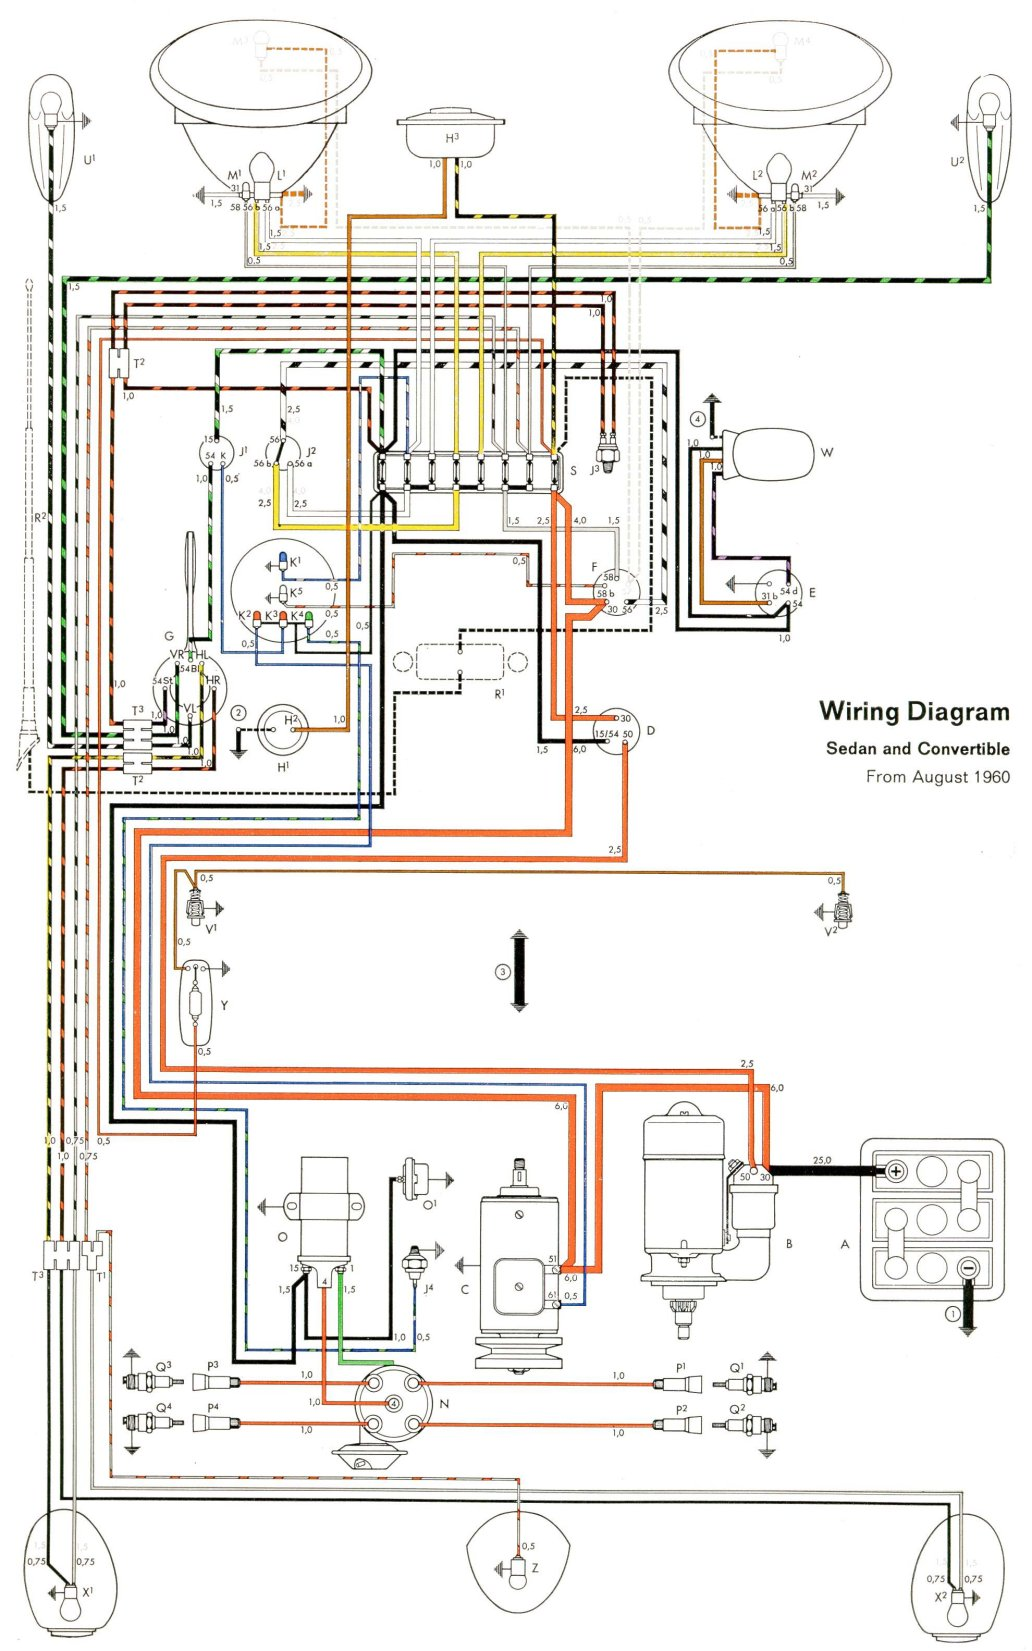 Vw 1600 Wiring Diagram List Of Schematic Circuit Spark Plug Thesamba Com Type 1 Diagrams Rh Engine Beetle